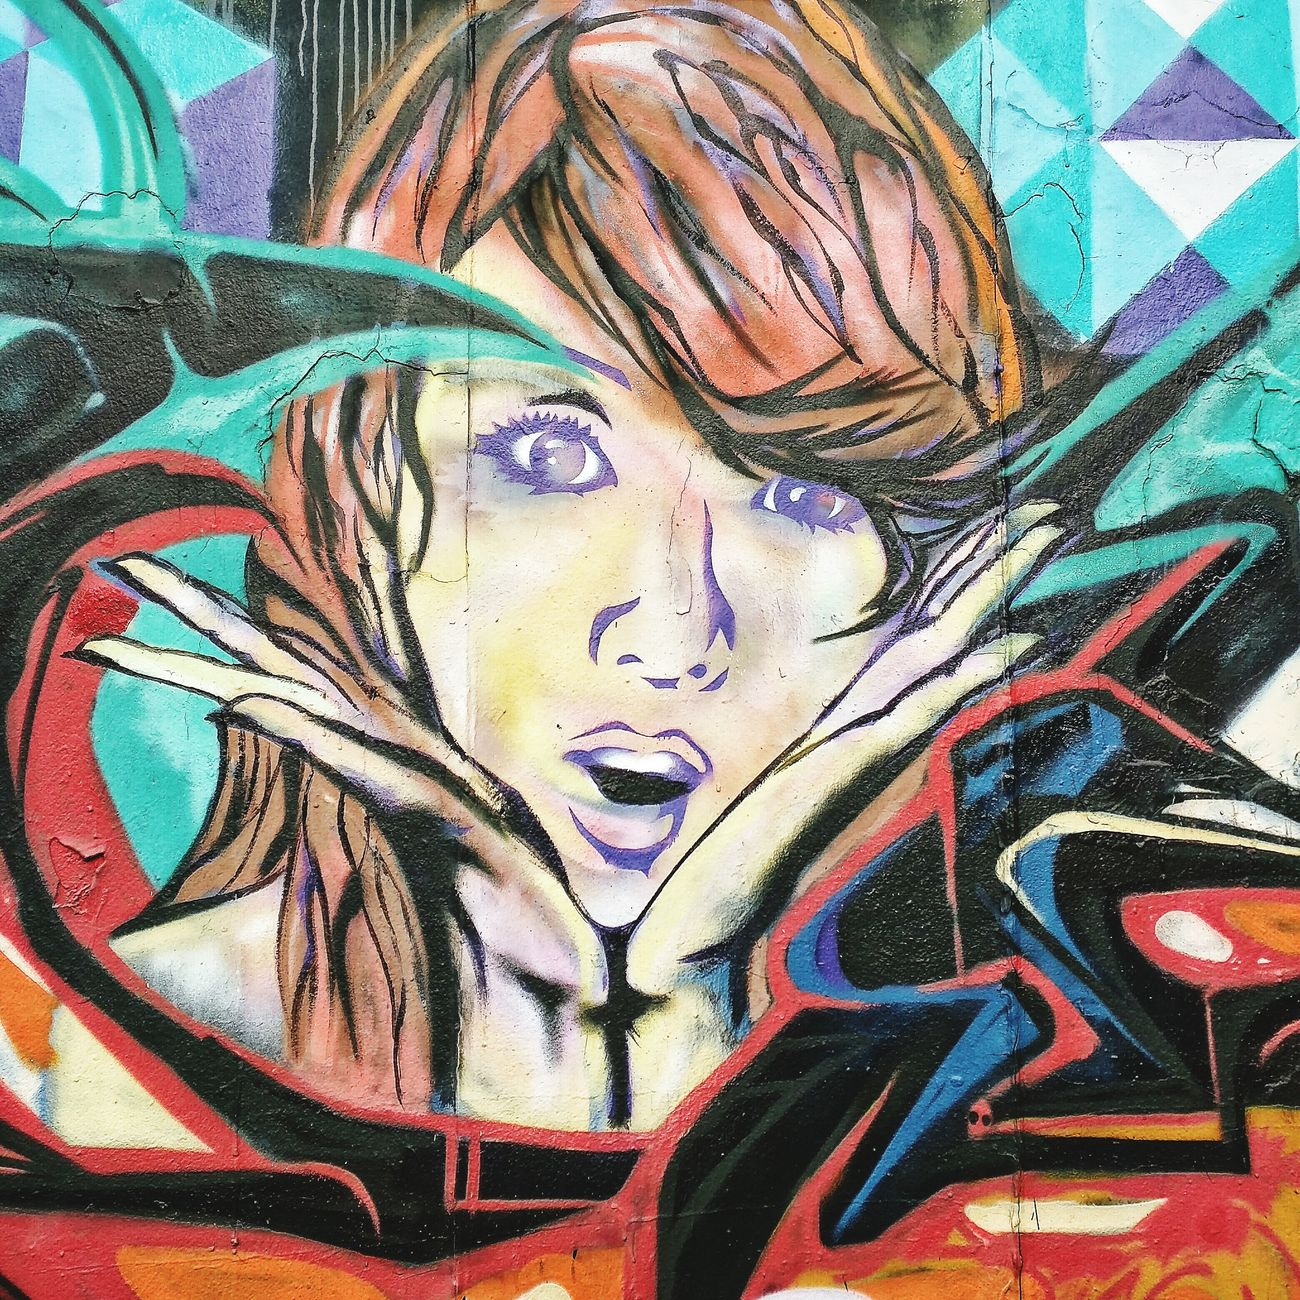 Asian Girl Surprise Koreatown Losangeles Neighborhood Stroll Good Morning Graphitti Streetart Mural Art